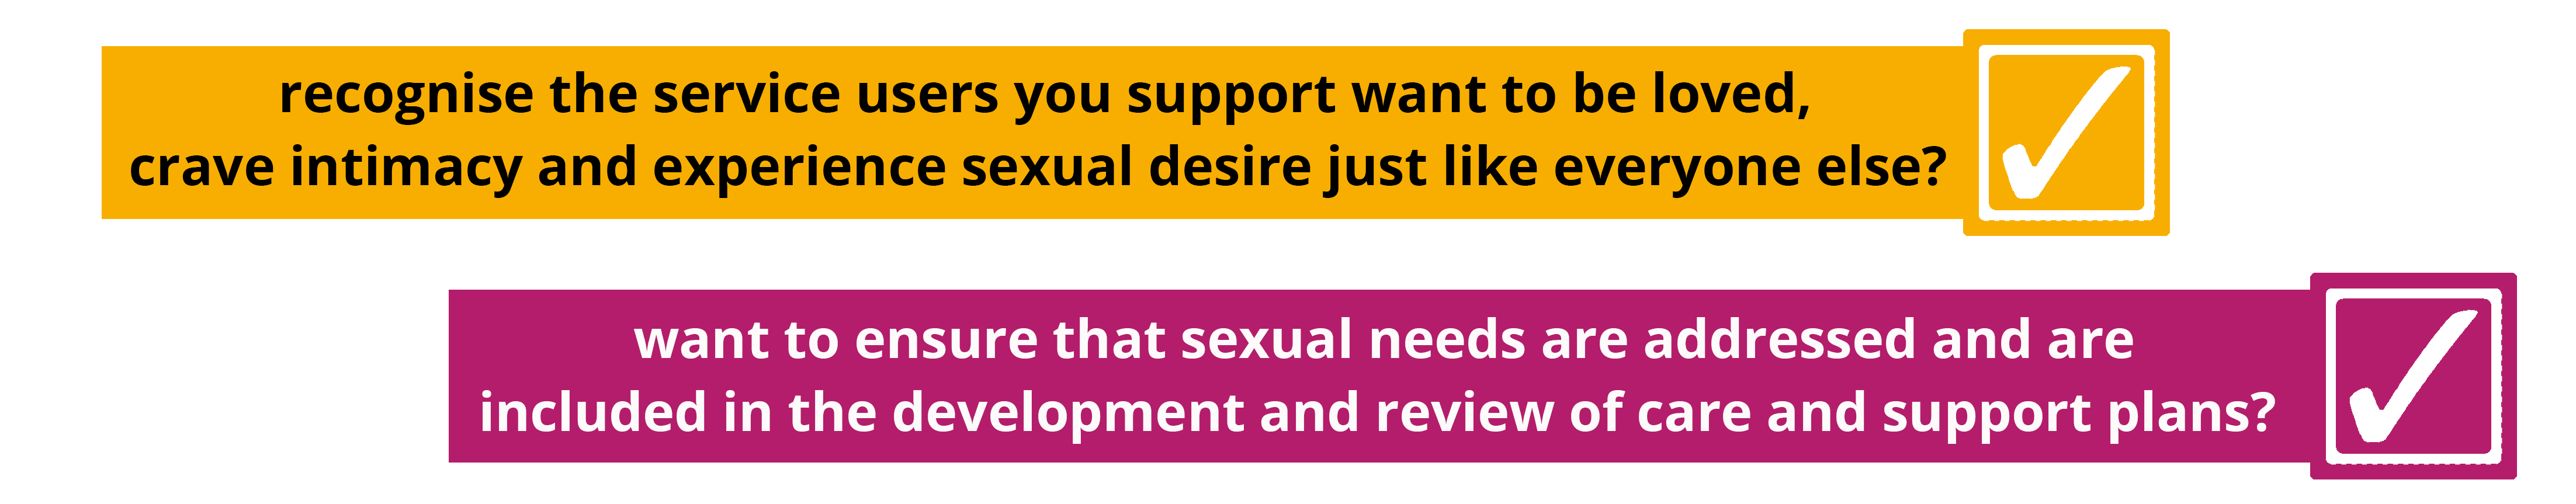 recognise the service users you support want to be loved, crave intimacy and experience sexual desire just like everyone else? want to ensure that sexual needs are addressed and are included in the development and review of care and support plans?